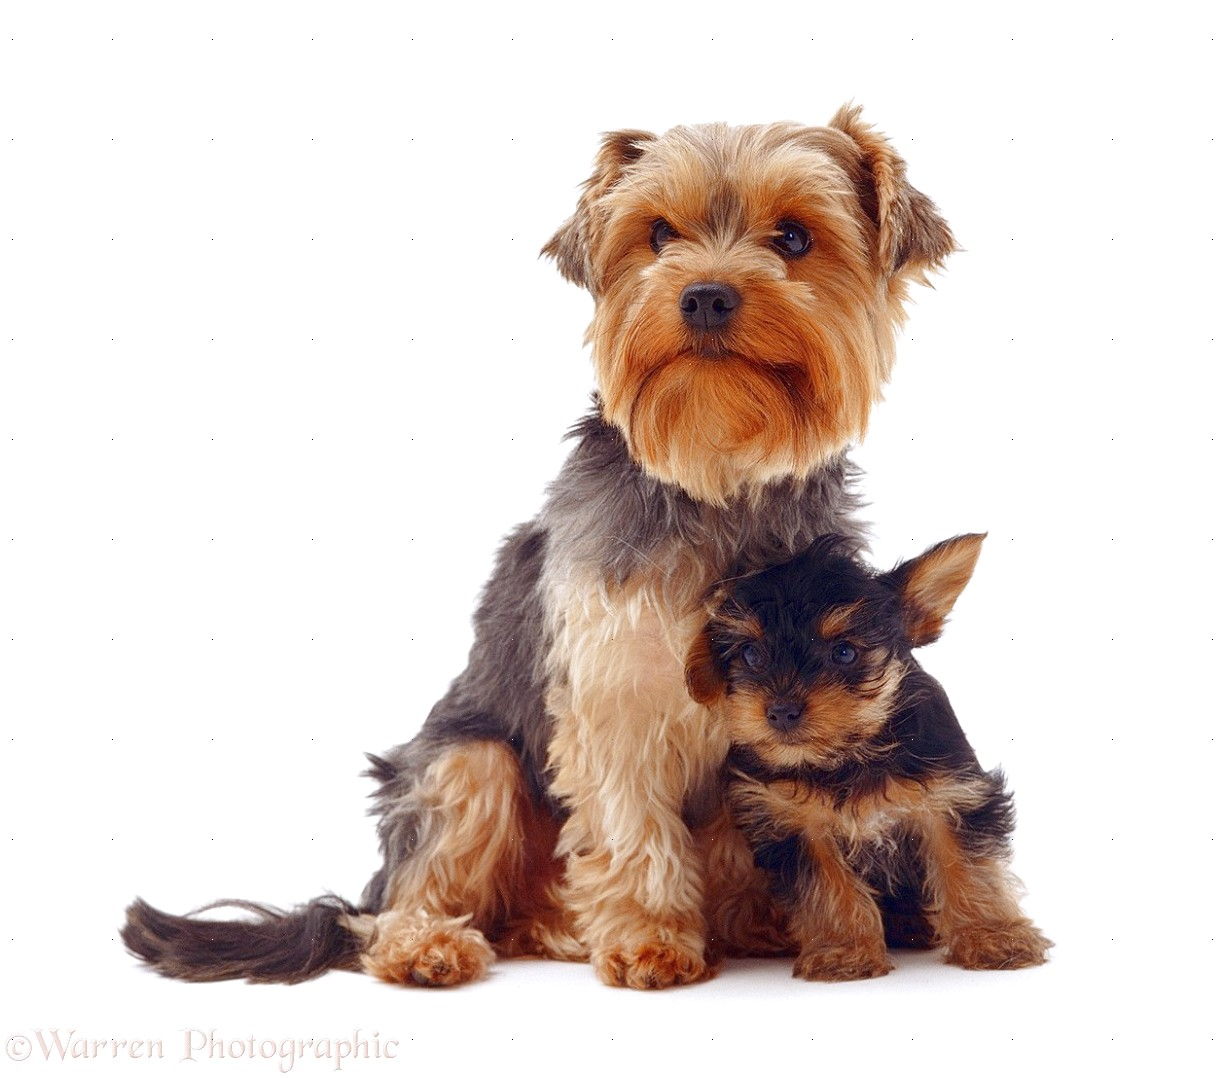 yorkshire terrier and puppy